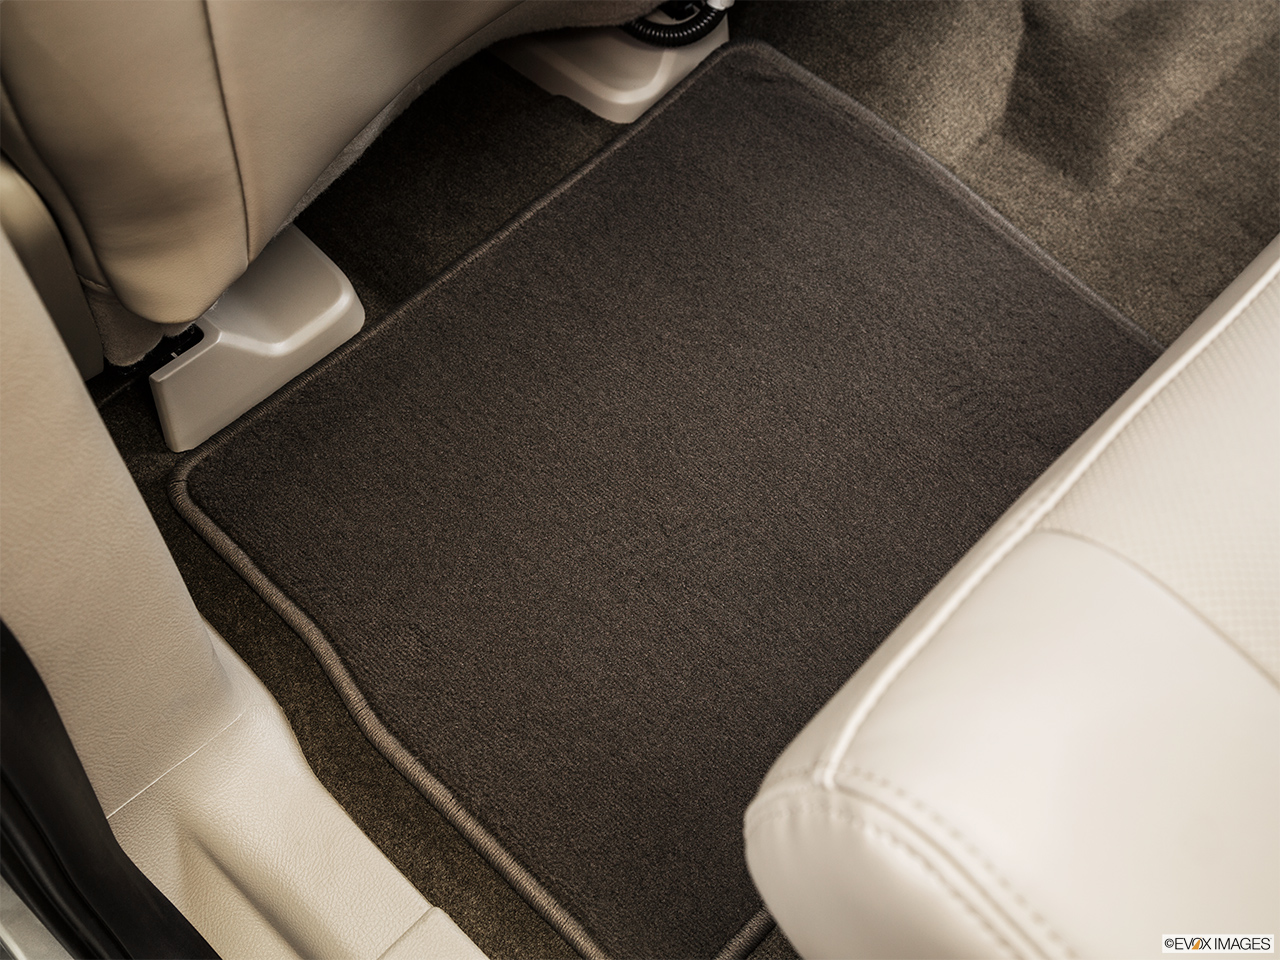 2015 Lincoln Navigator Base Rear driver's side floor mat. Mid-seat level from outside looking in.